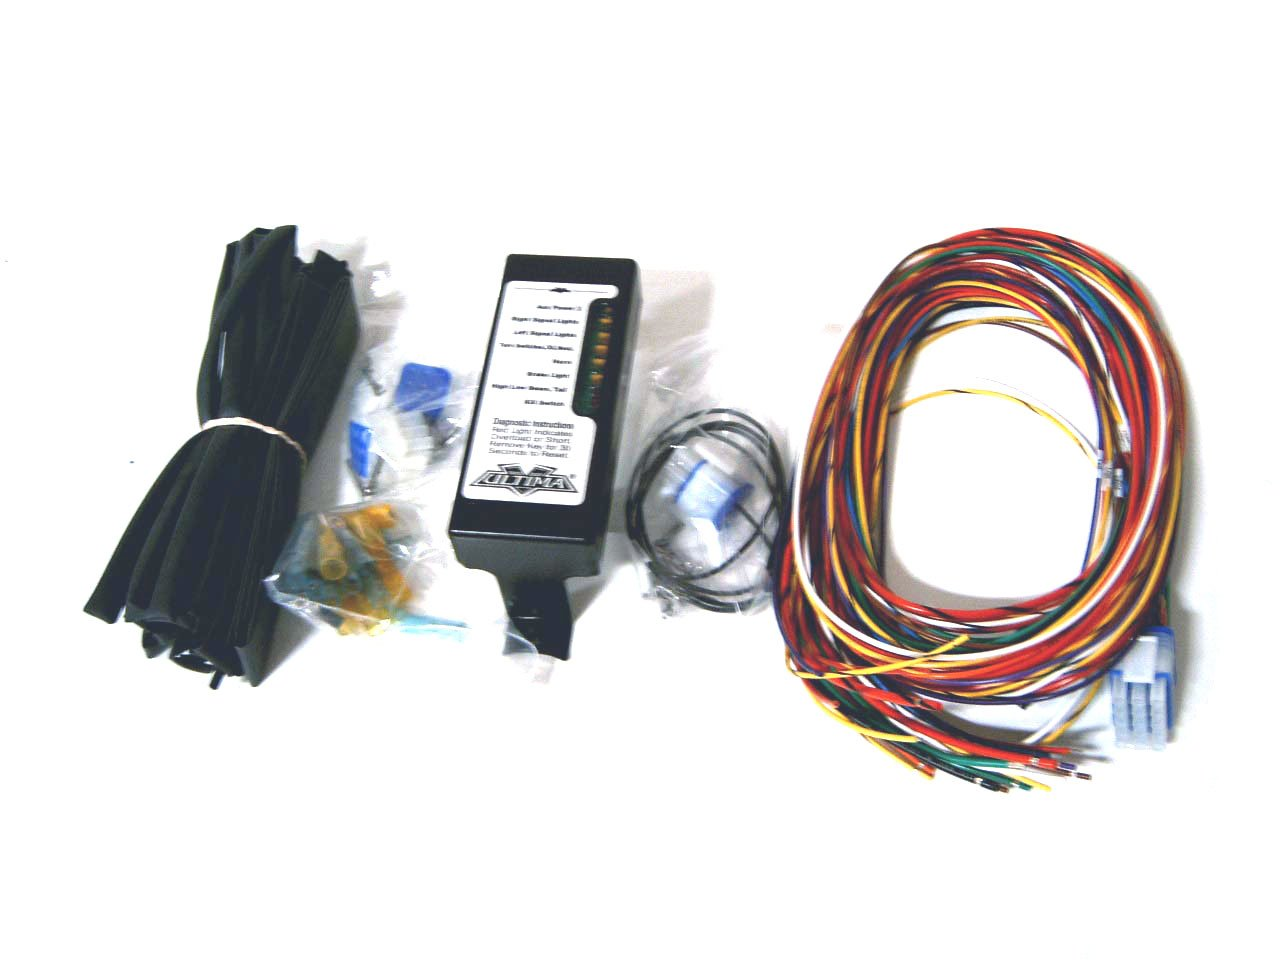 61DV2Bq5%2BHL._SL1280_ amazon com ultima complete wiring harness kit for harley davidson where to buy a trailer wiring harness at edmiracle.co